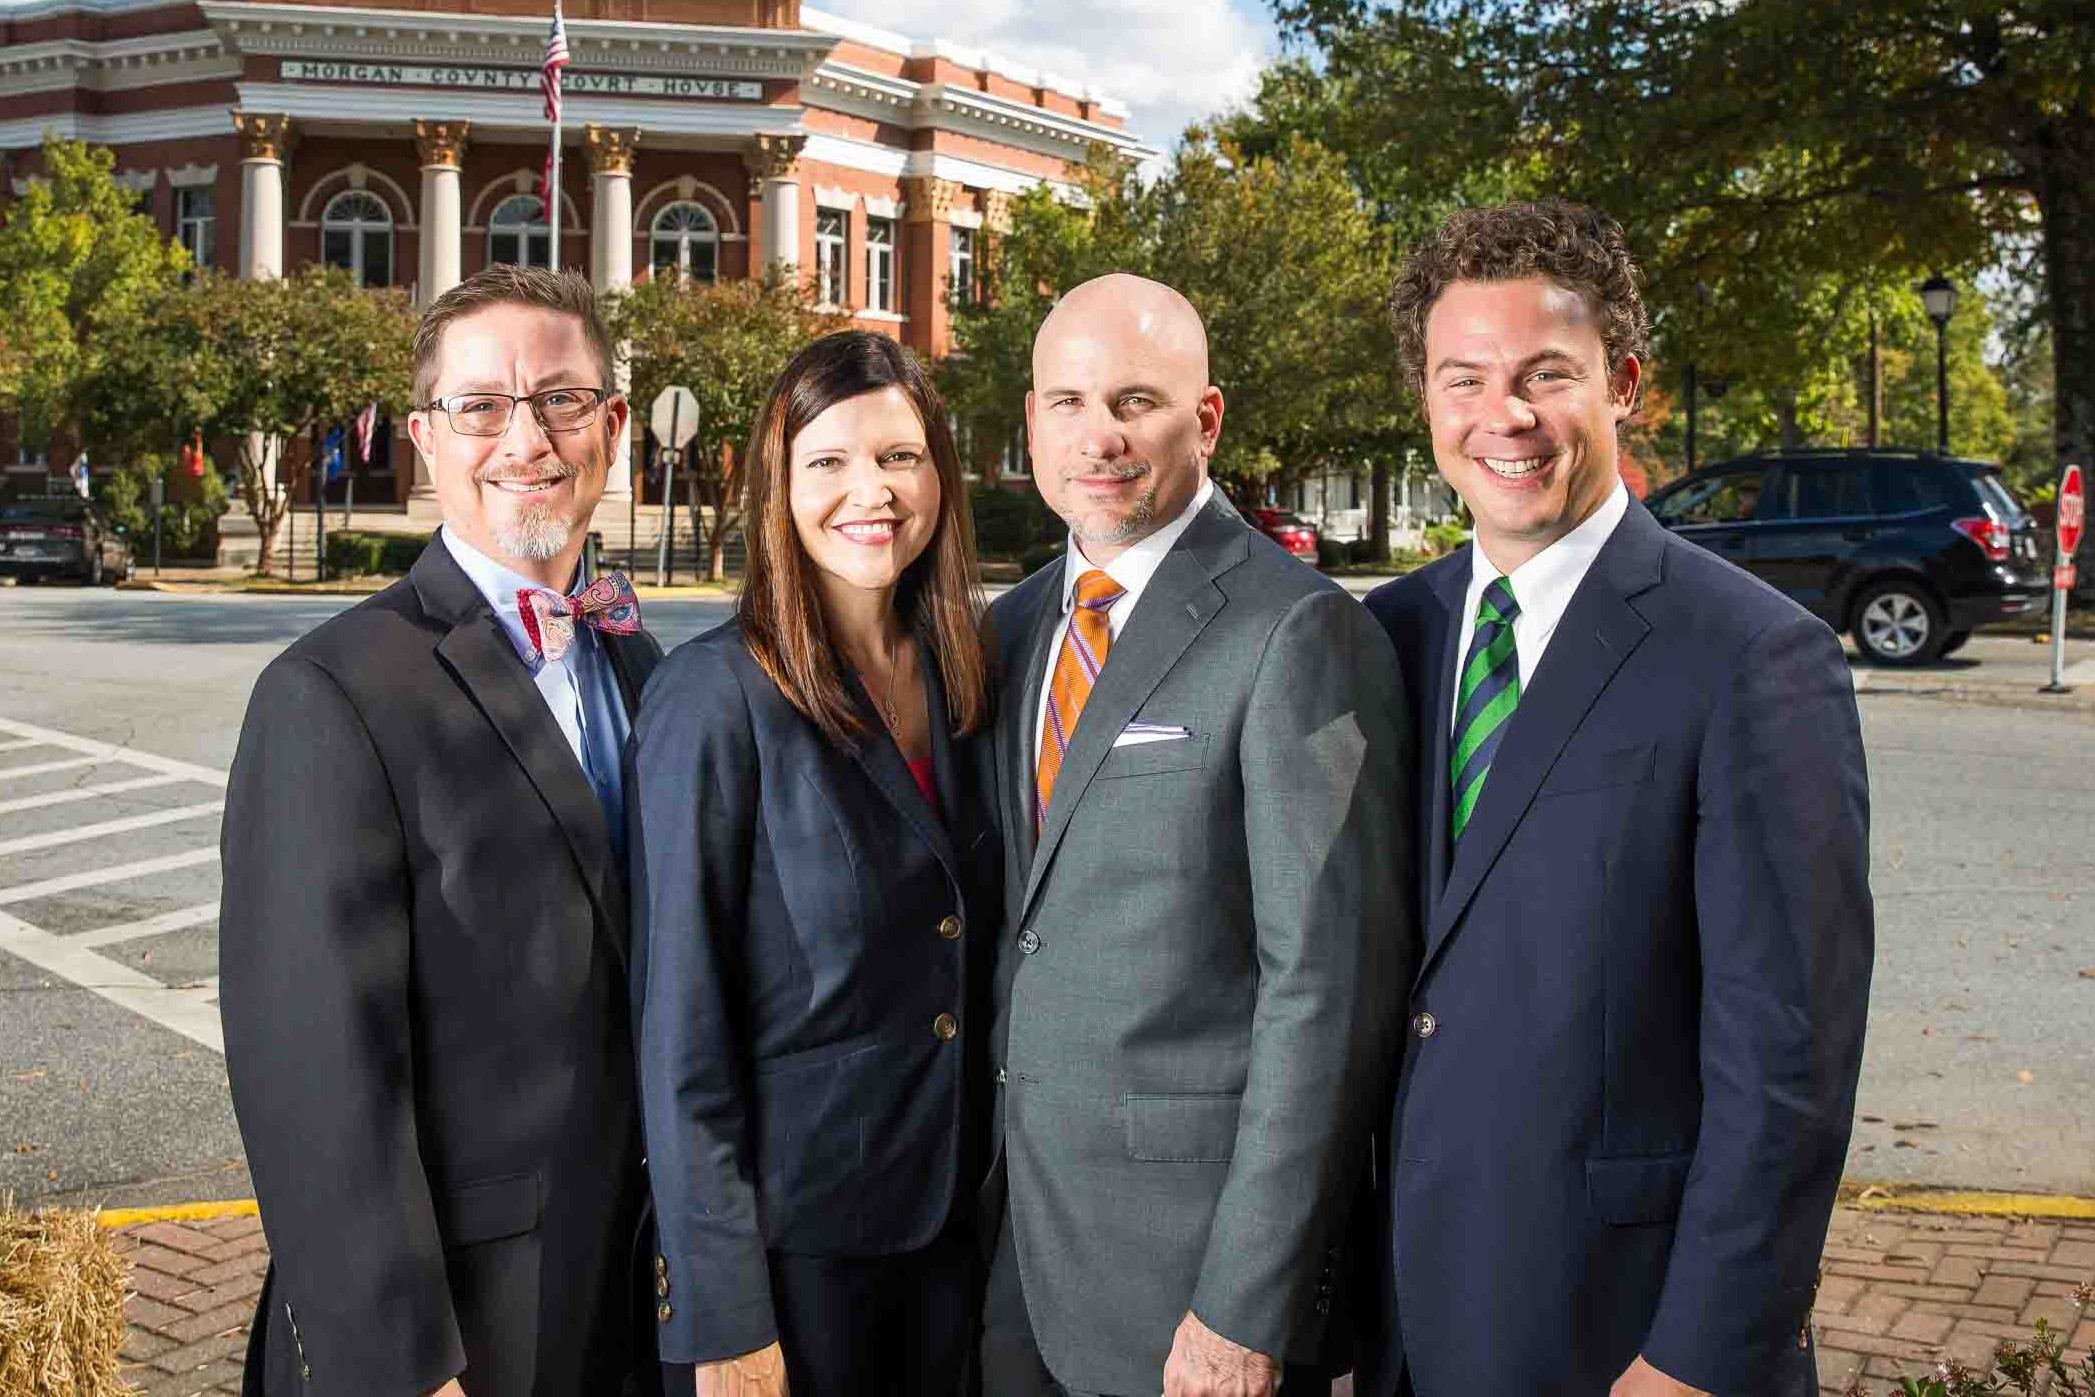 A team of exceptional lawyers who practice criminal defense, corporate, and divorce law.